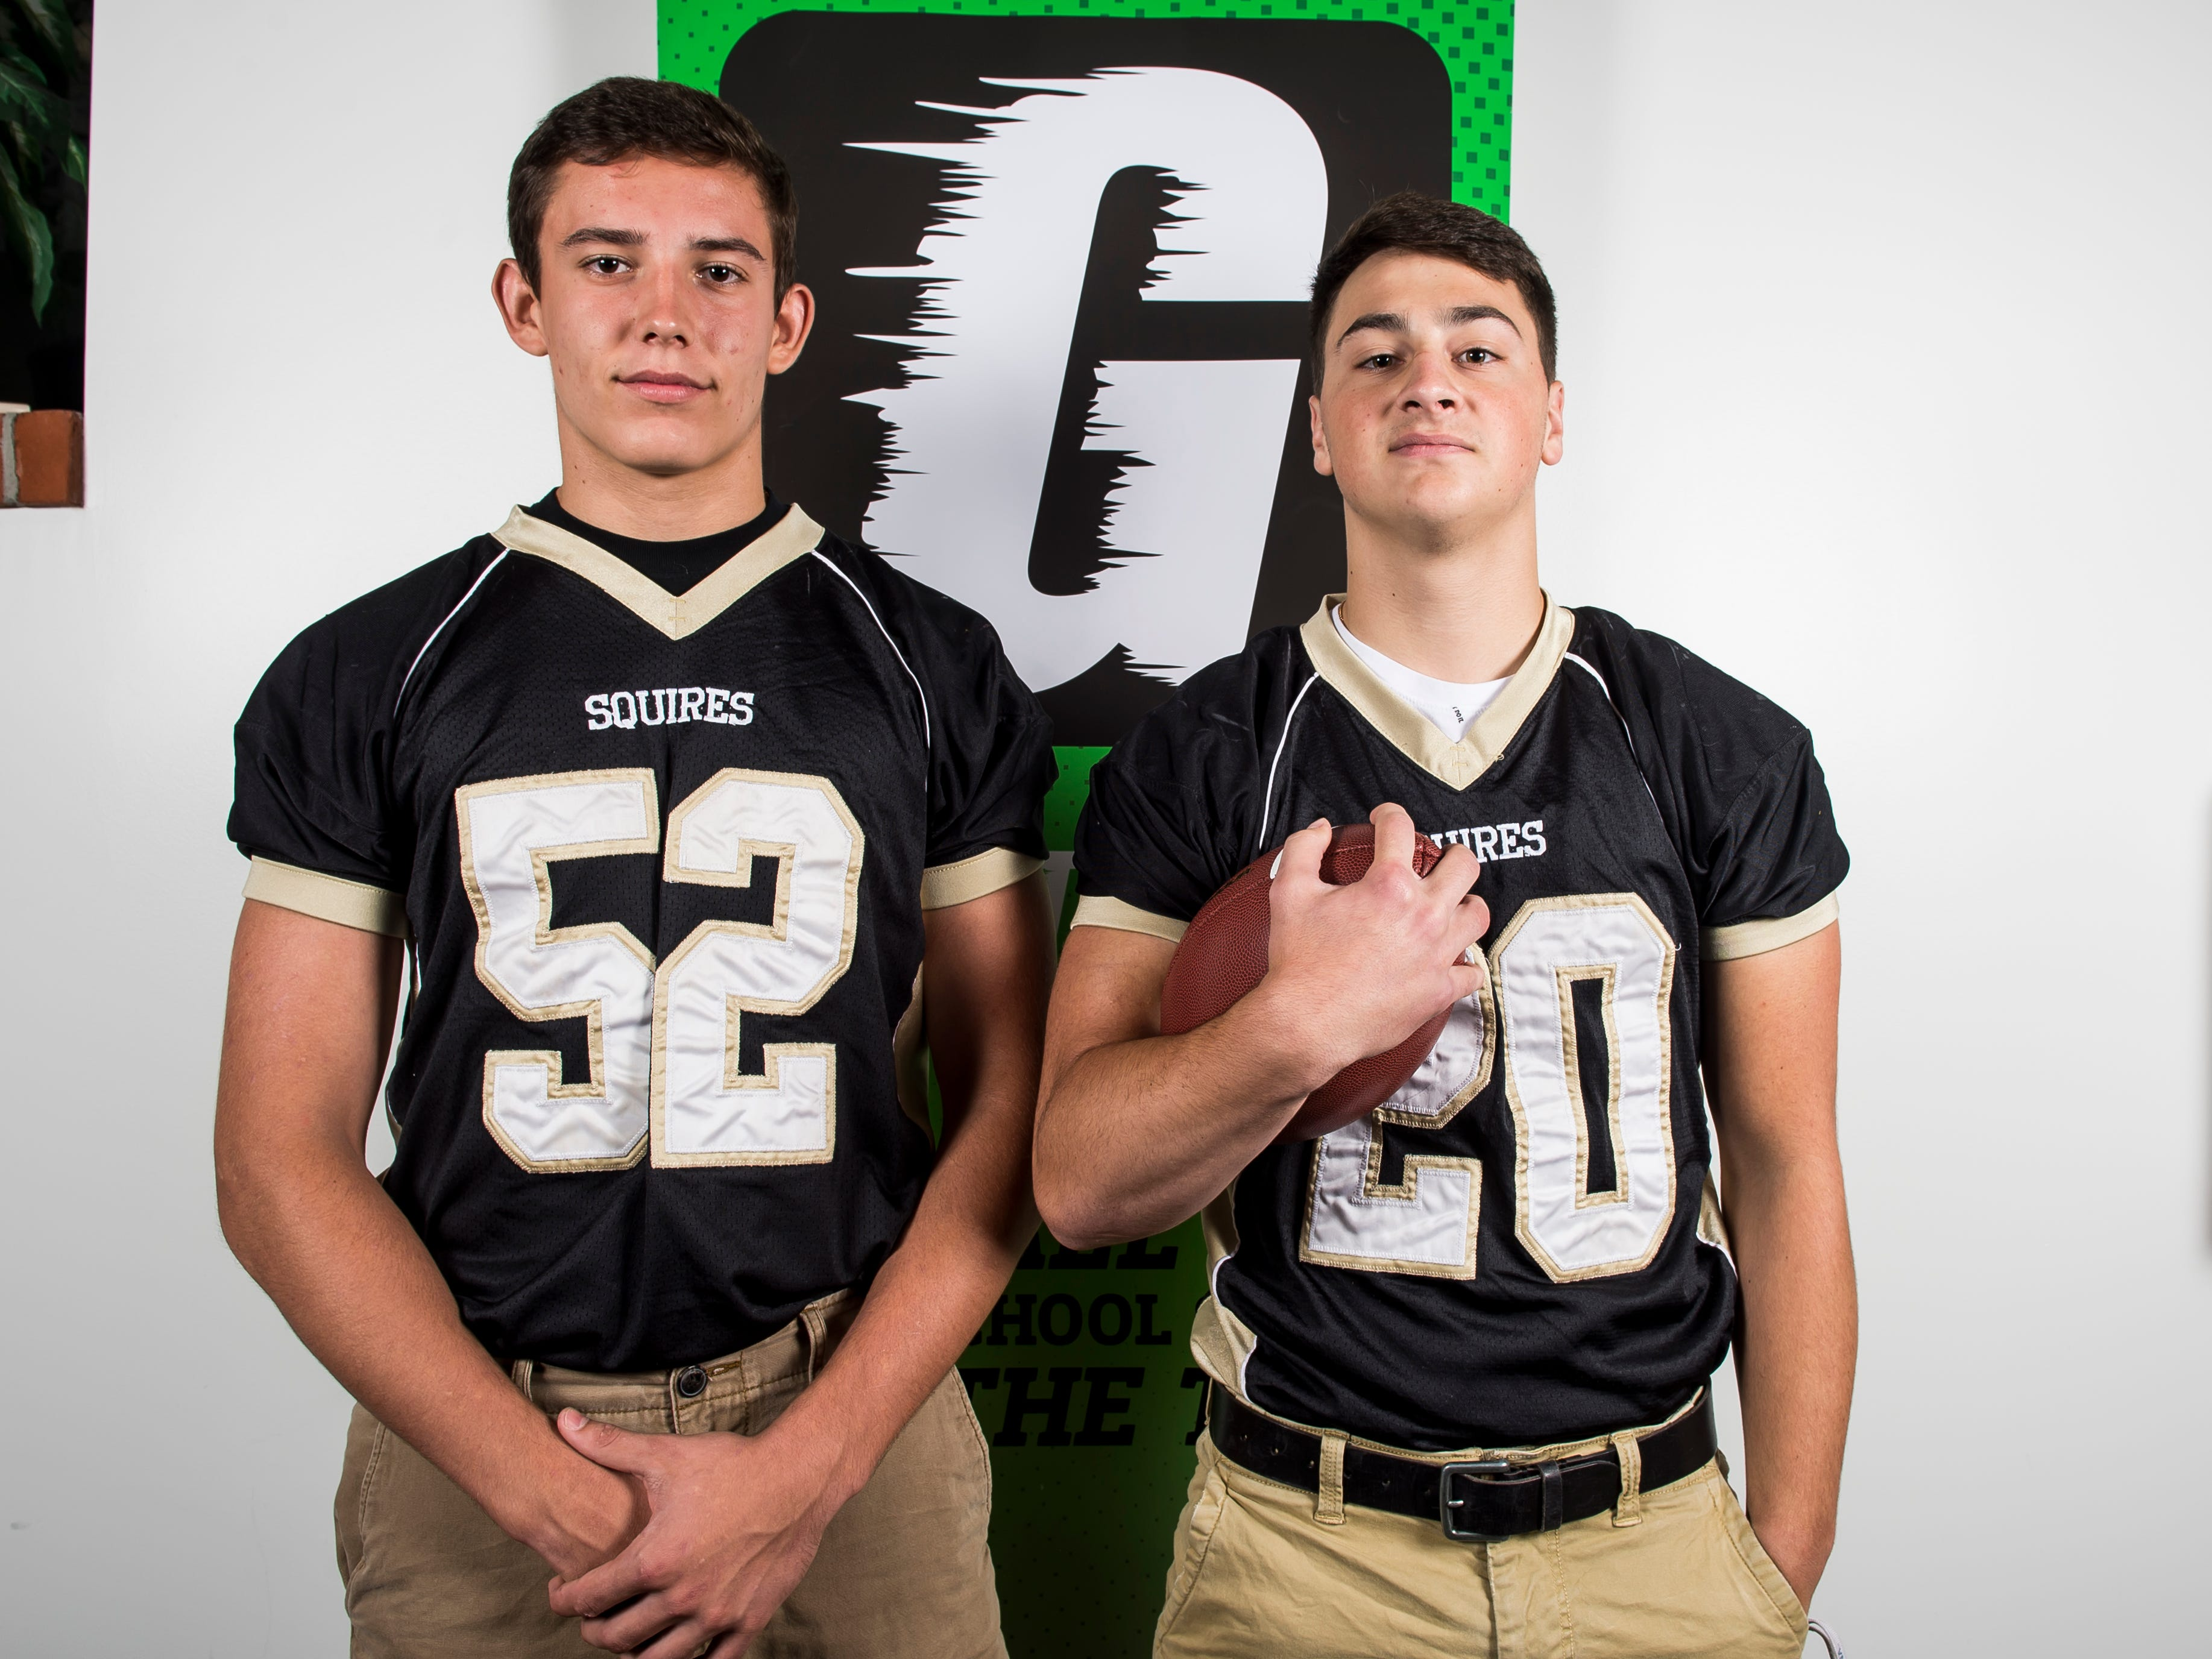 Delone Catholic football players Andrew Shipley, left, and Tyler Monto pose for a photo during YAIAA football media day in Hanover on Thursday, August 2, 2018.